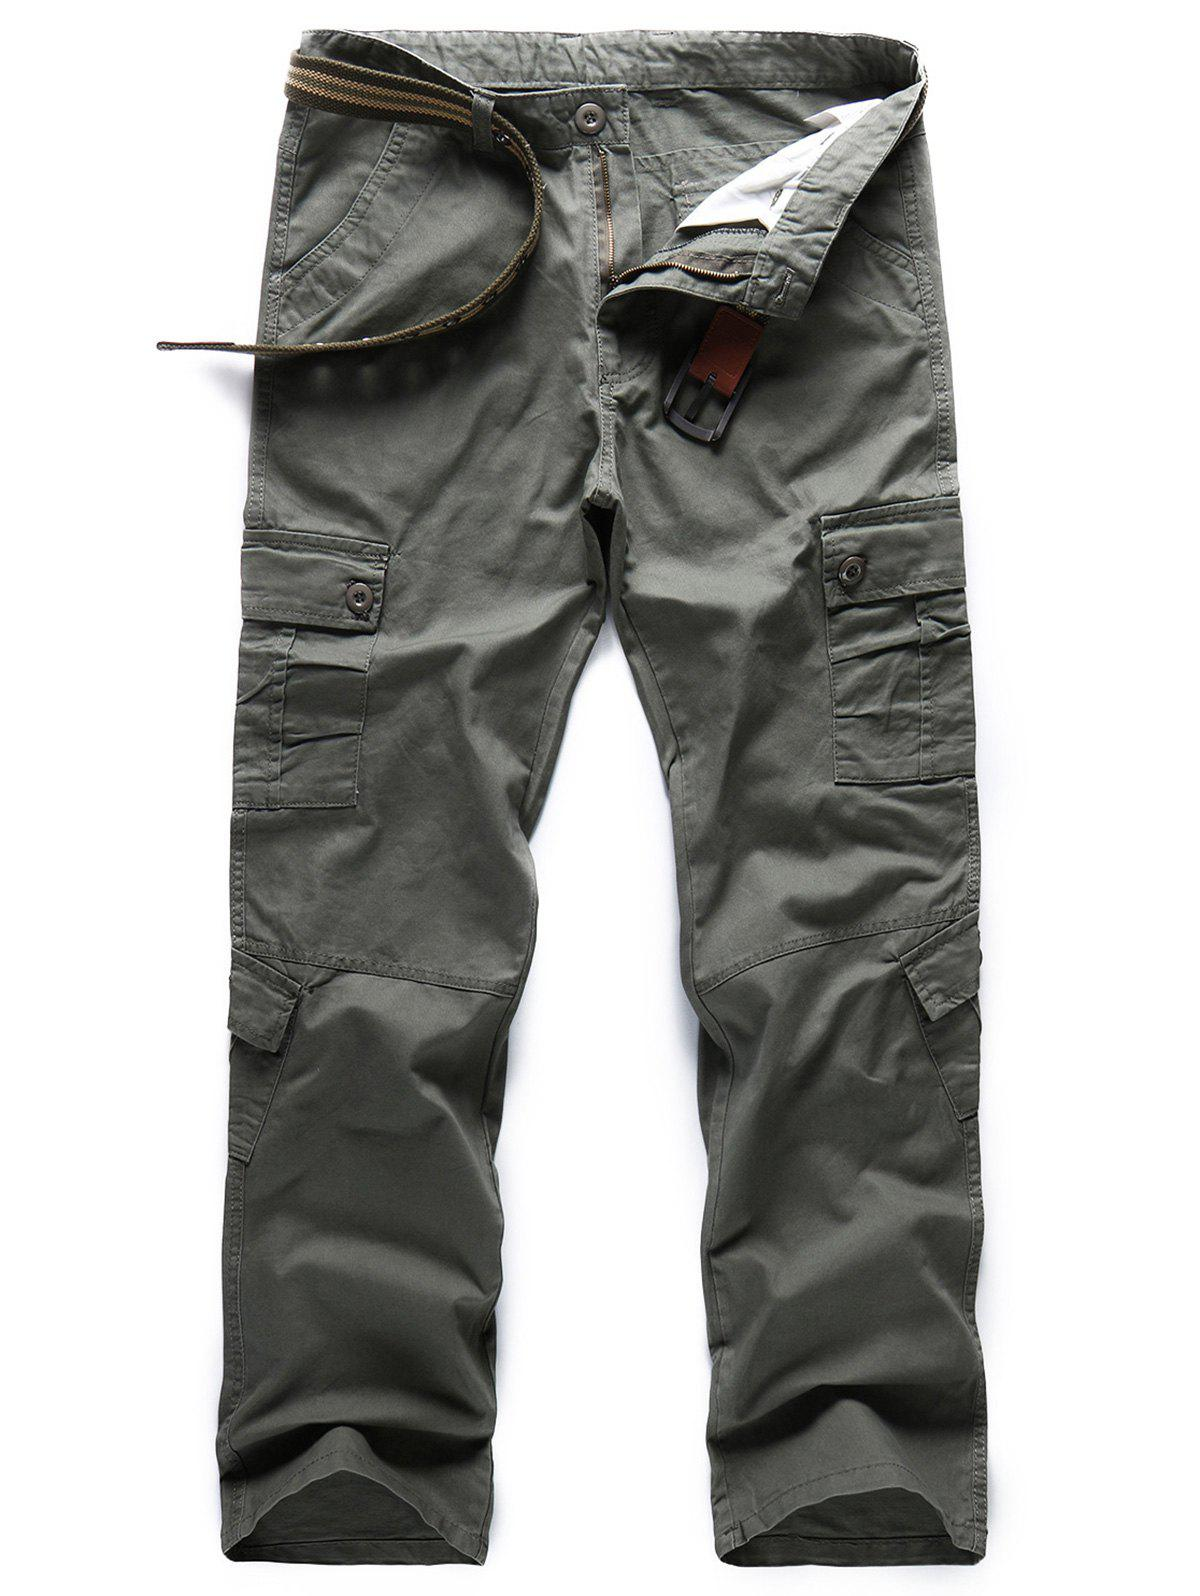 Shops Casual Solid Color Pockets Design Cargo Pants